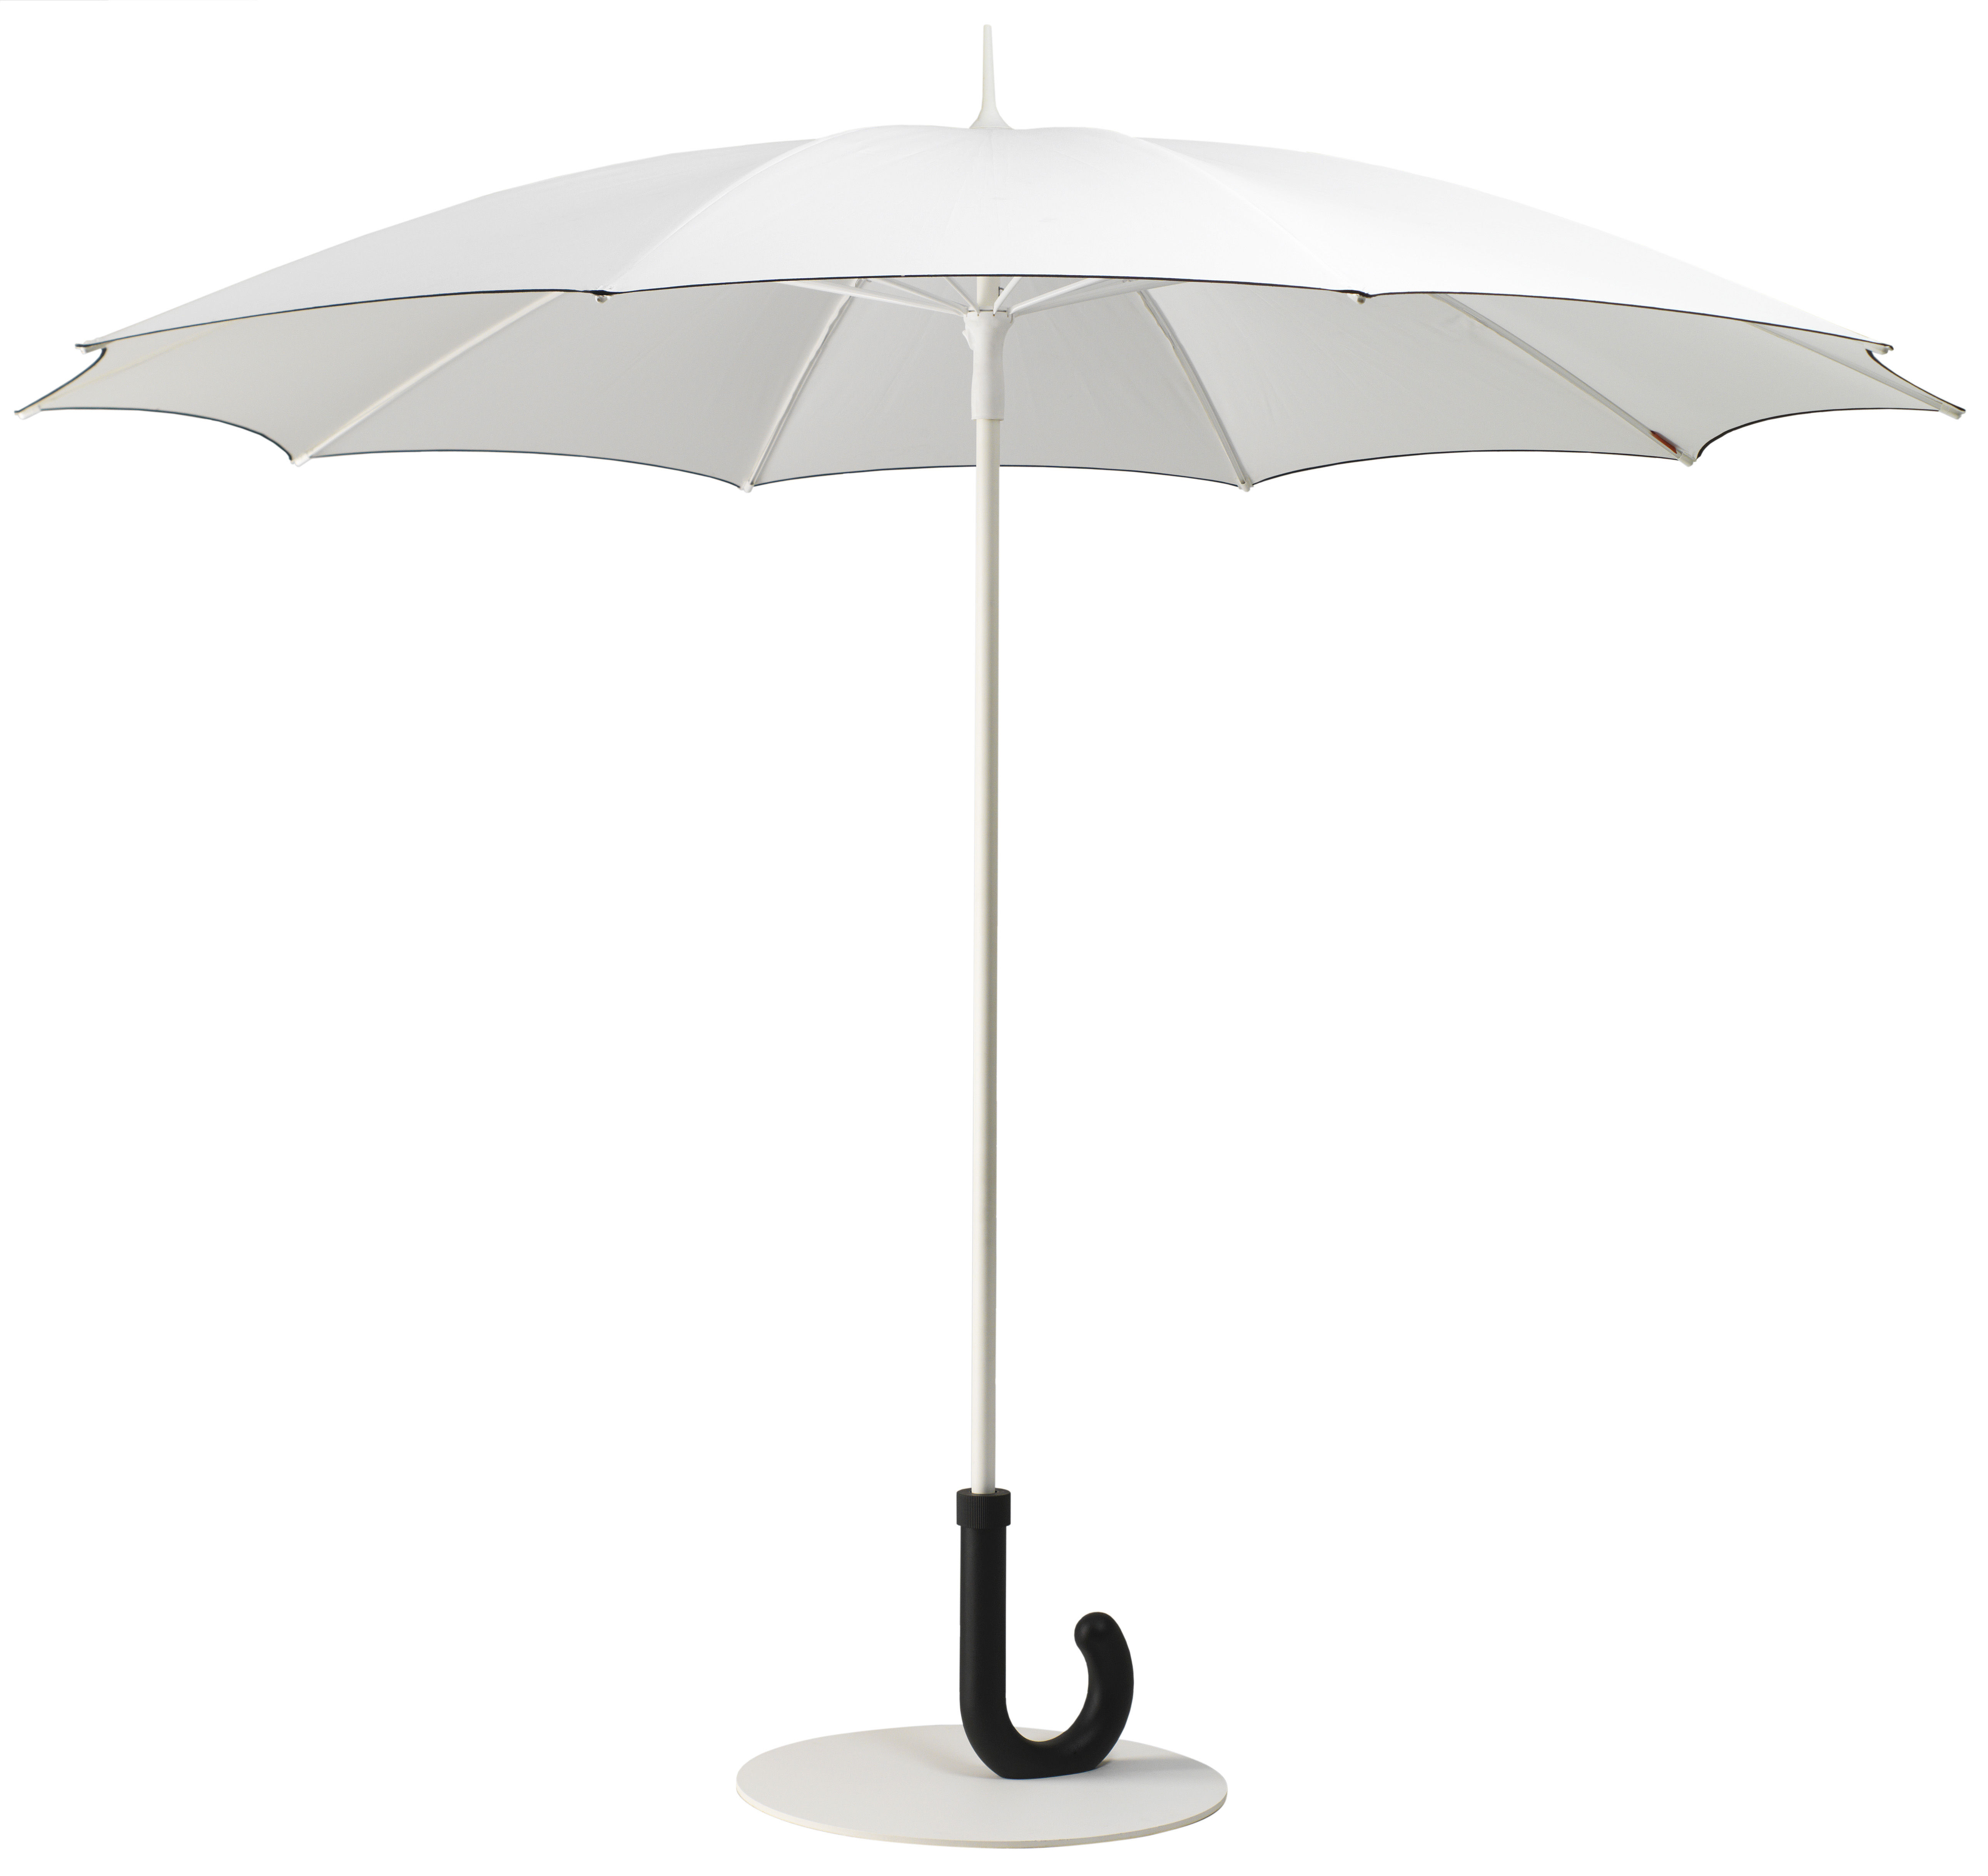 Outdoor - Parasols - Gulliver Parasol - Ø 295 cm by Symo - Blanc - Aluminium, Lacquered steel, Polyester